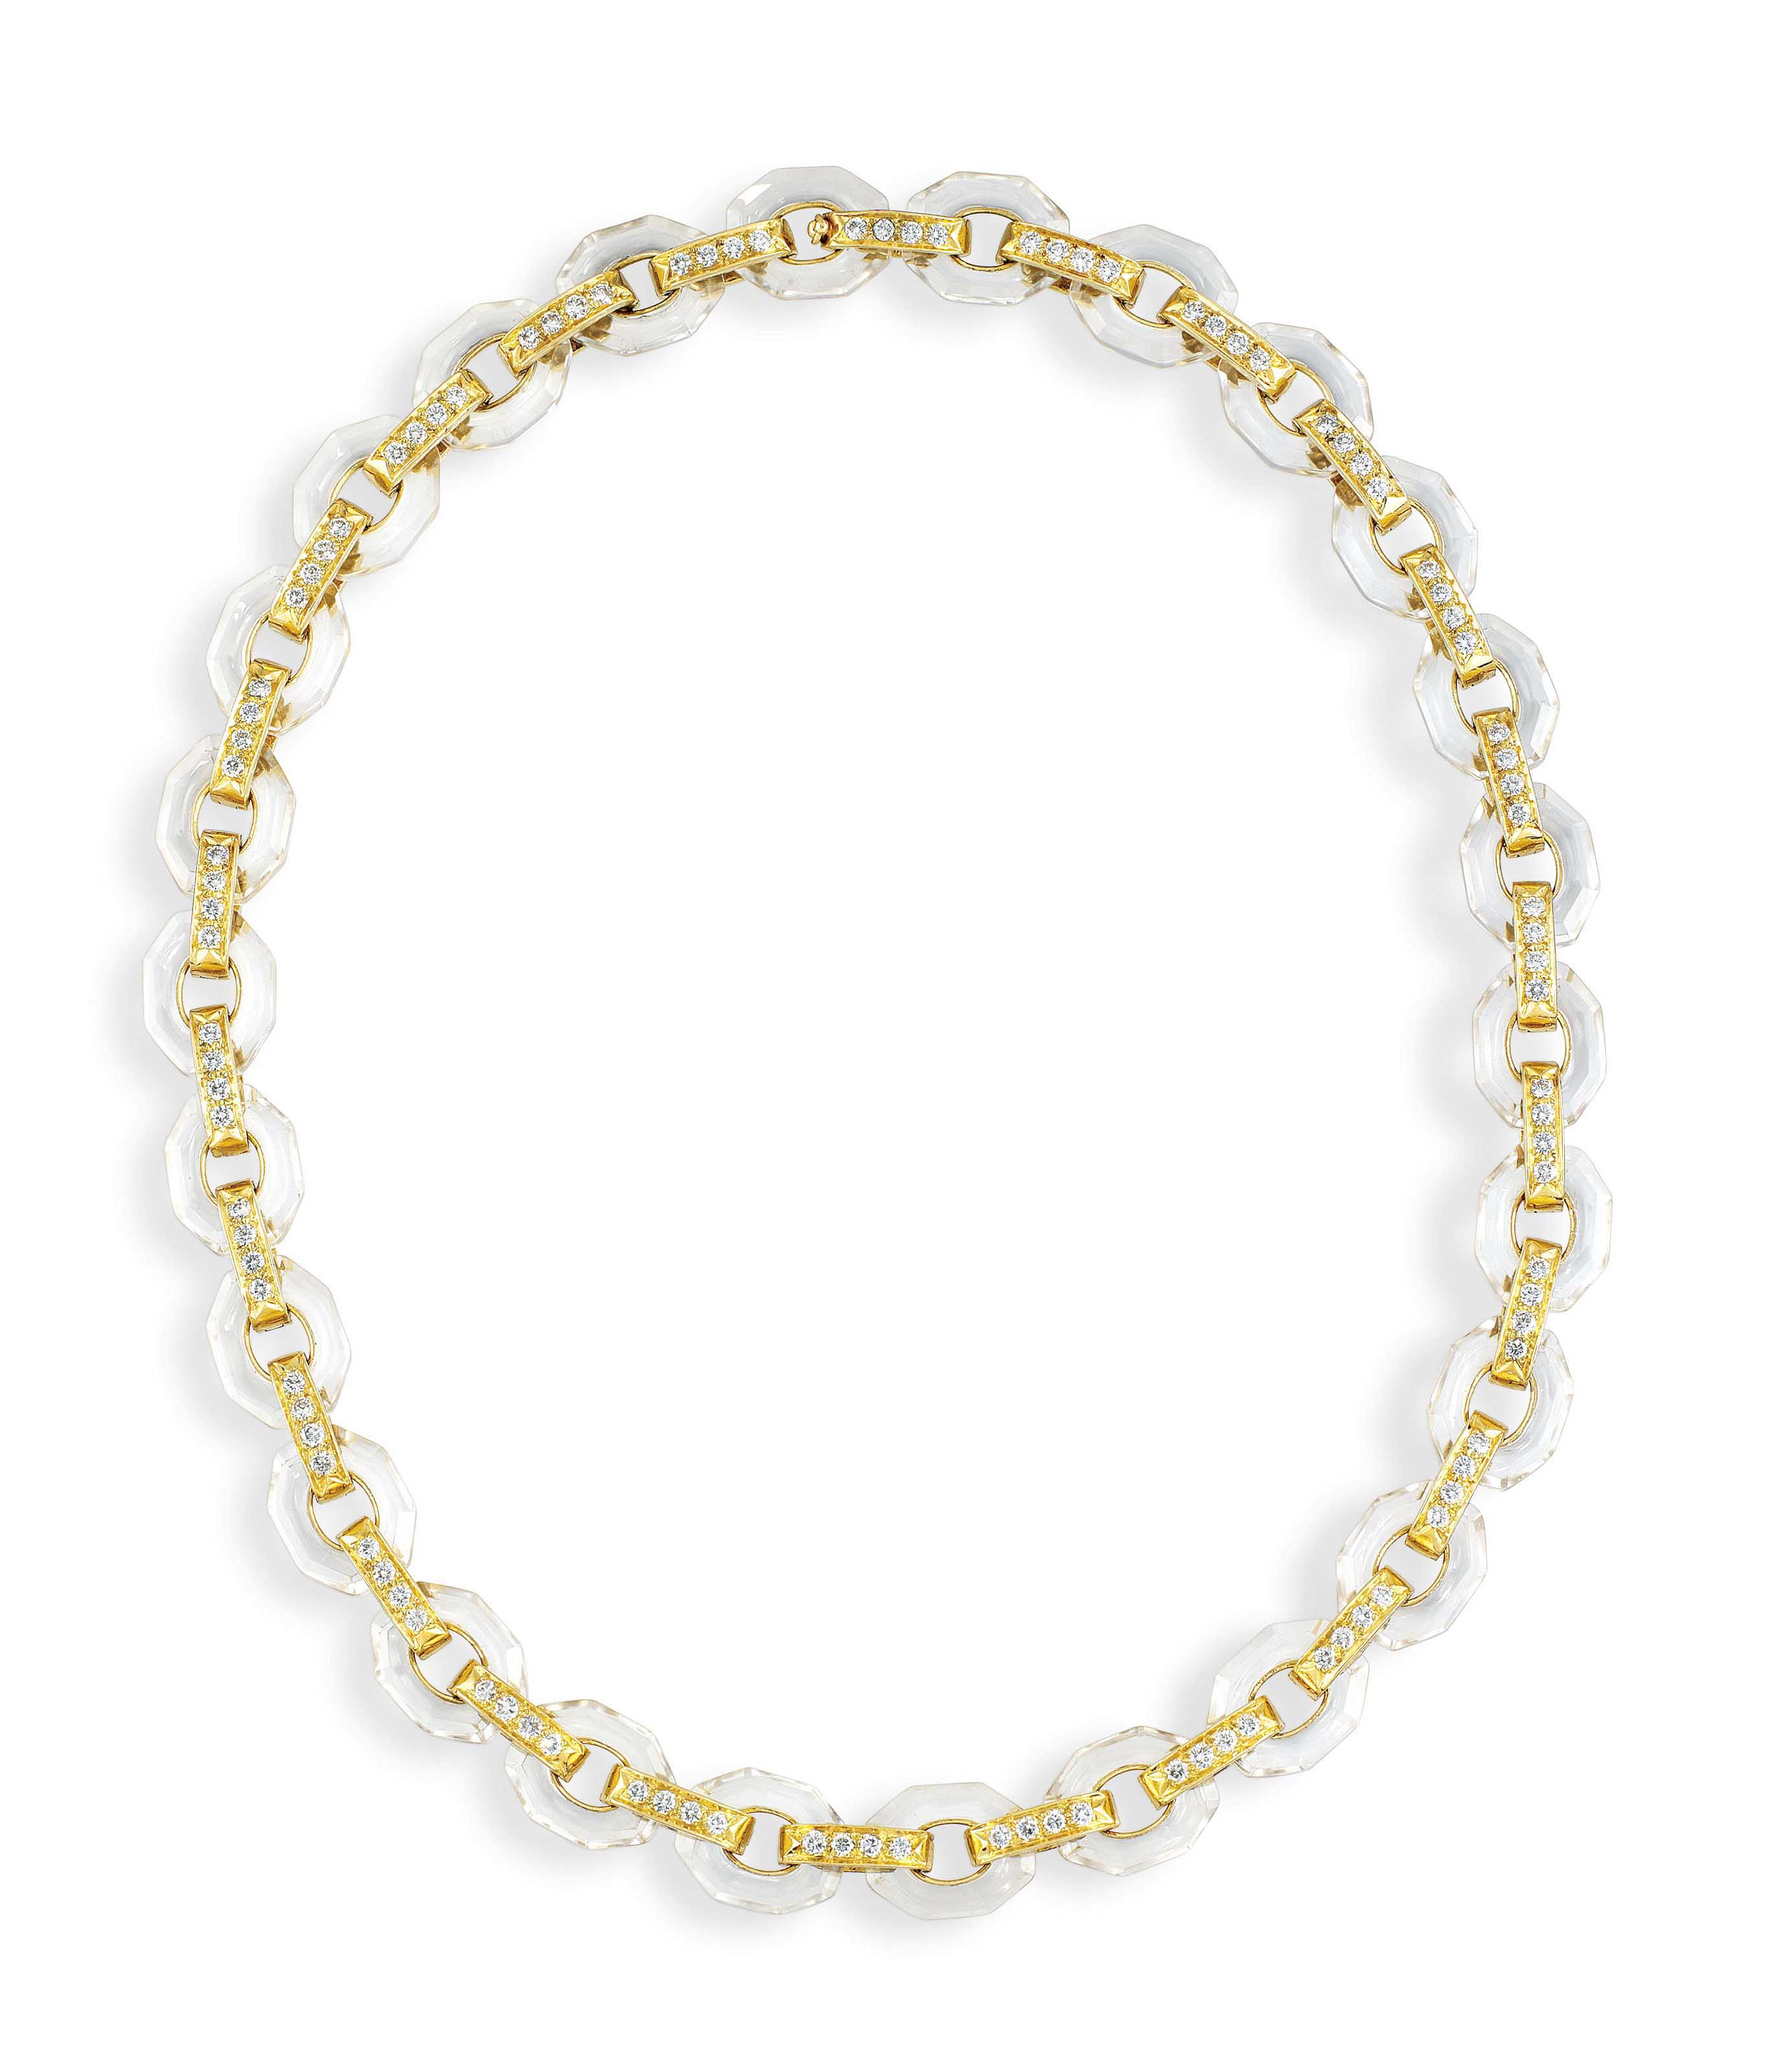 A ROCK CRYSTAL AND DIAMOND NECKLACE, BY POIRAY